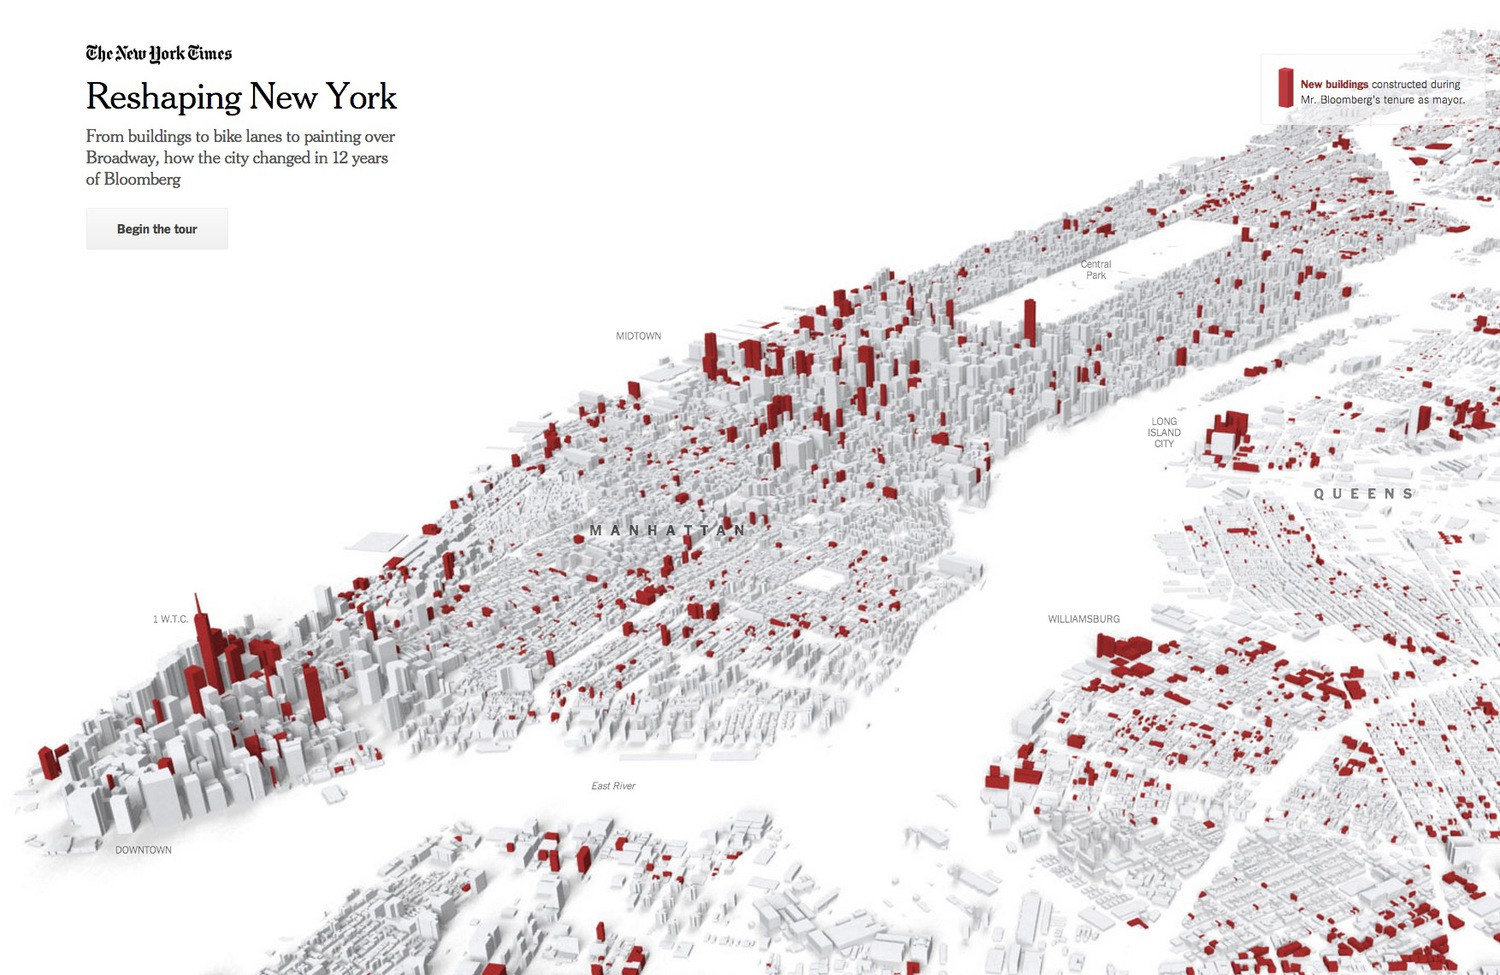 Reshaping New York, New York Times, 2015